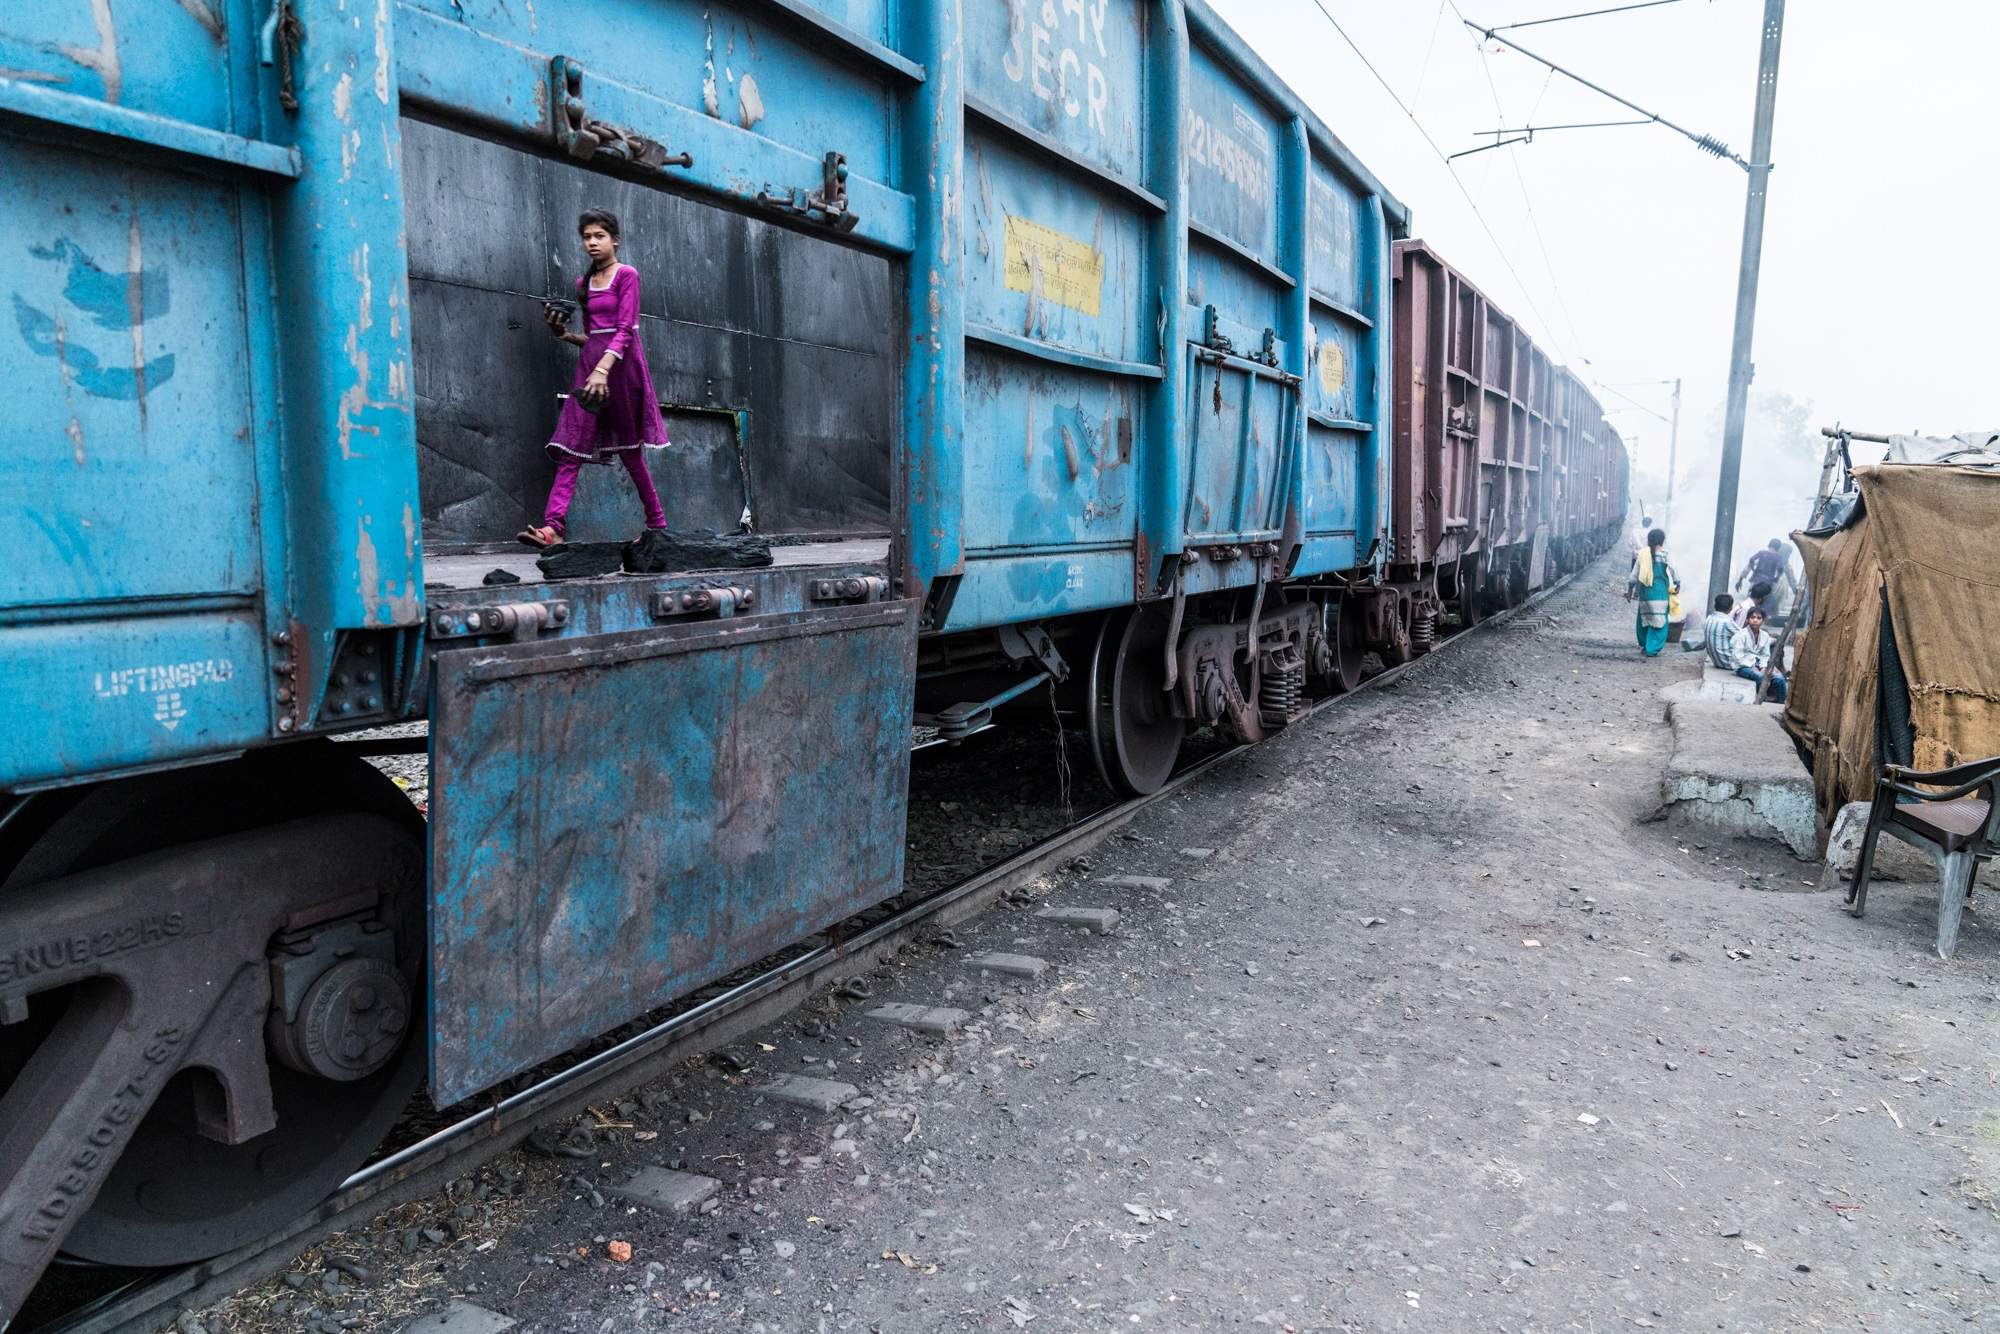 A young girl stealing left-over coal from a coal-train carriage to use for cooking fuel. India.